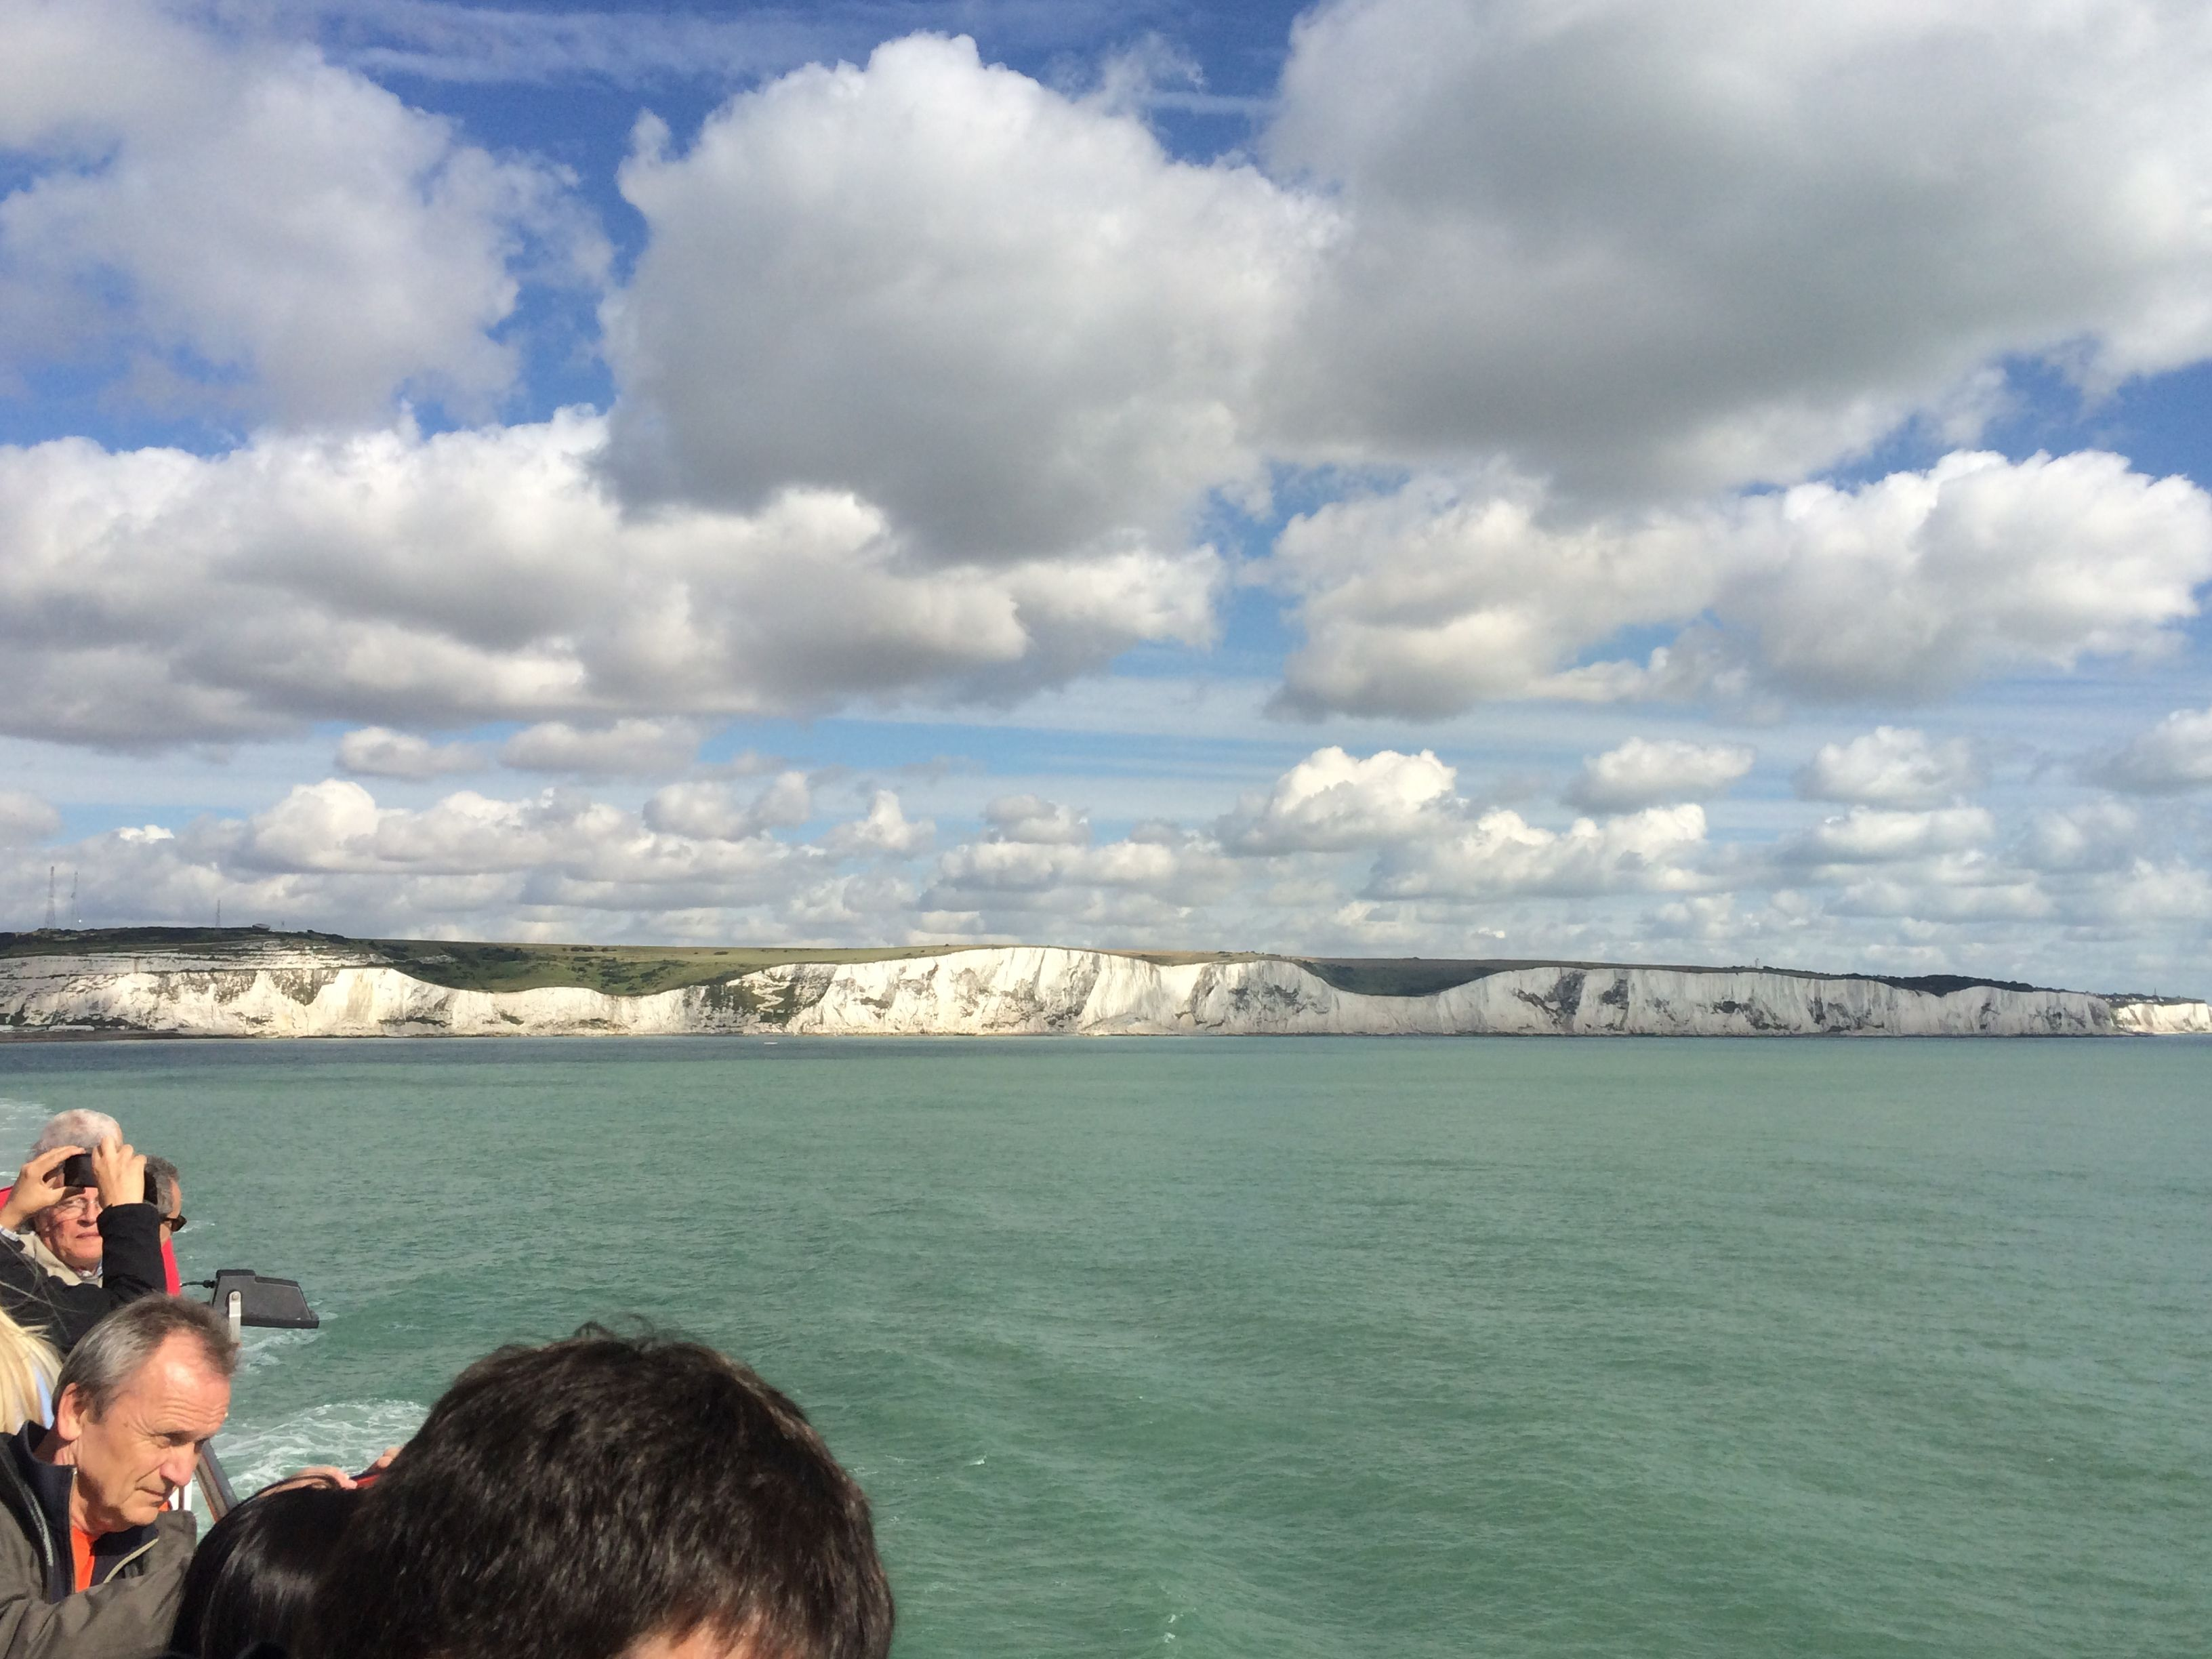 The White Cliffs of Dover in Dover, Kent